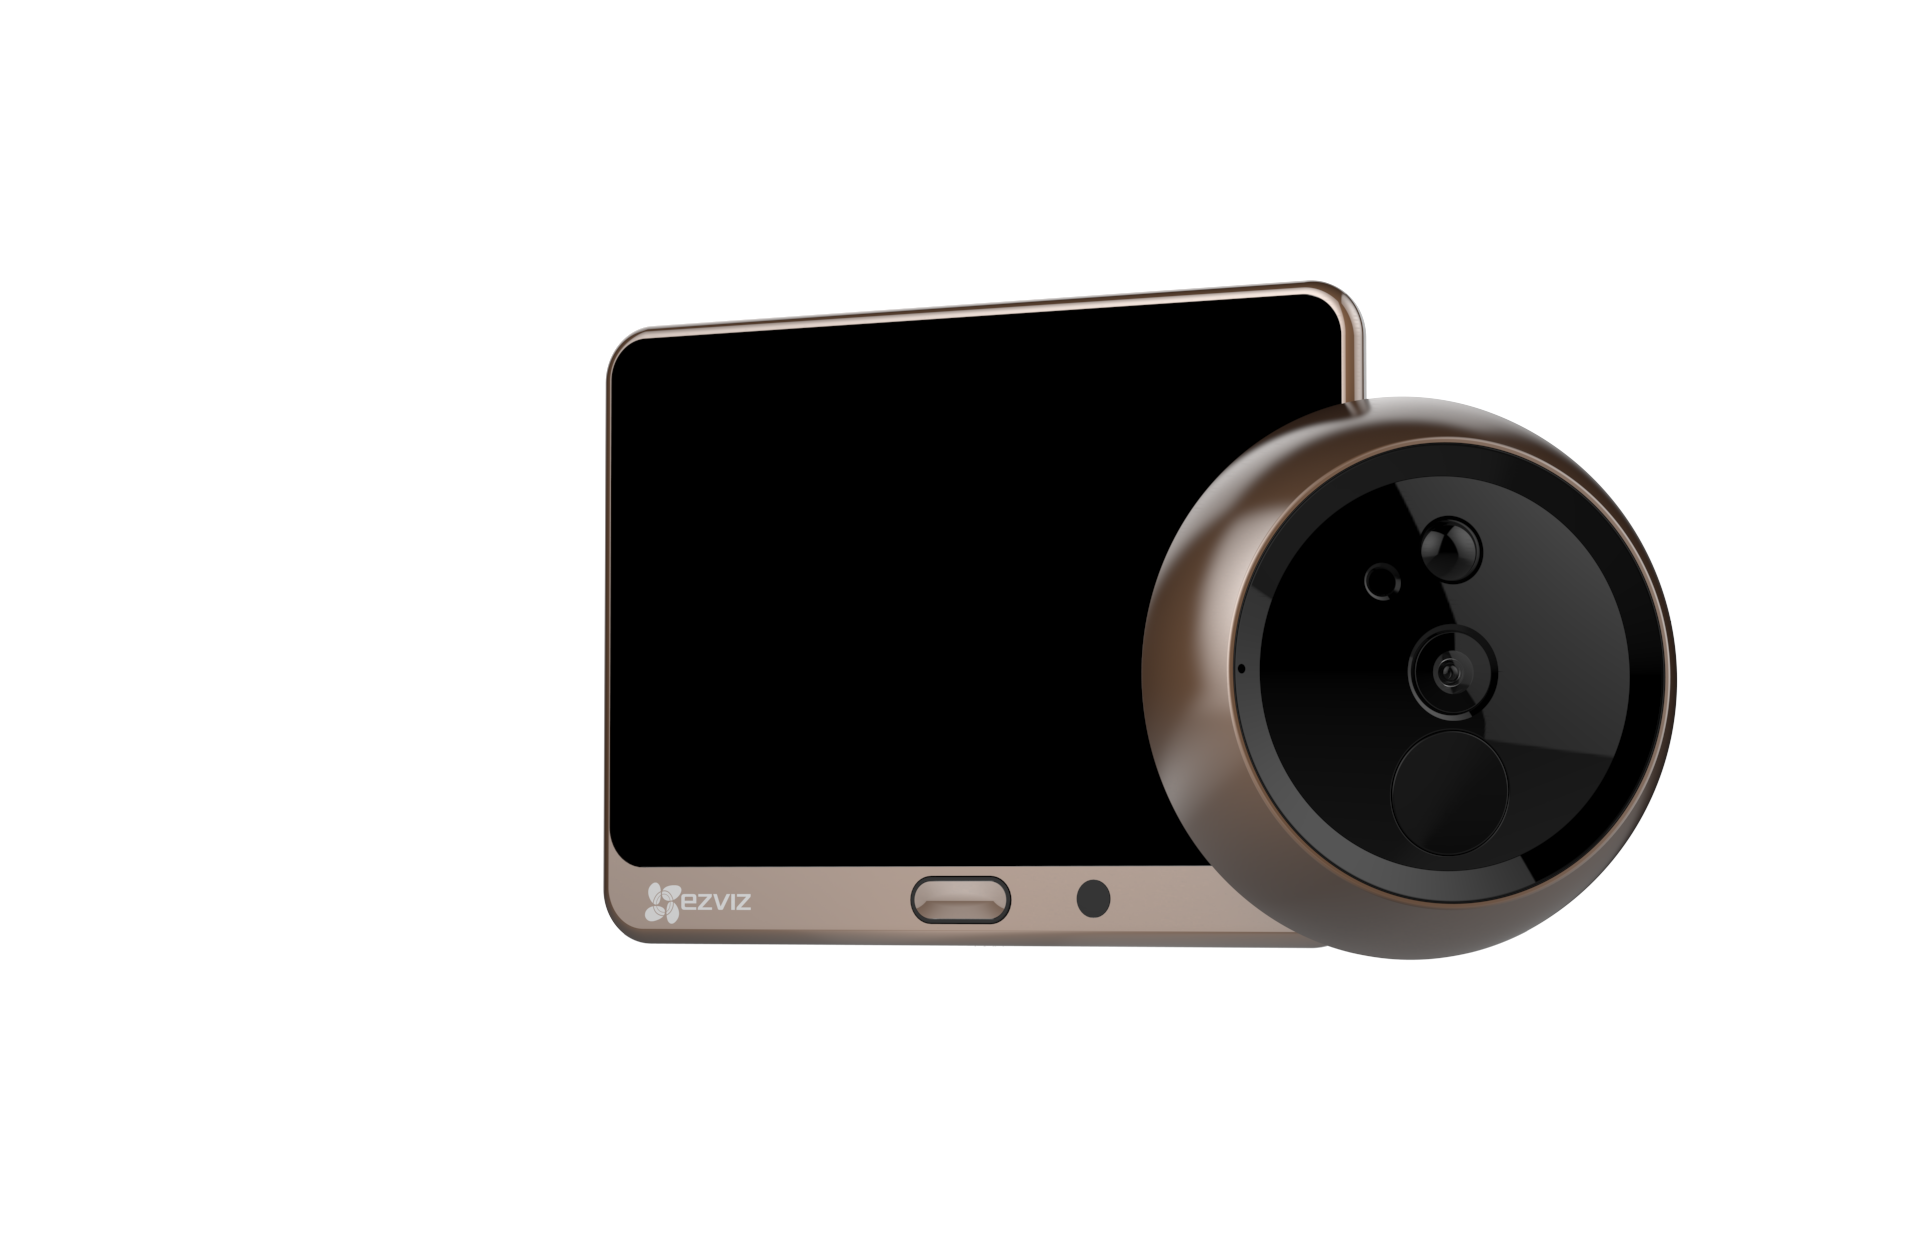 EZVIZu0027s u0027Lookout Smart Door Vieweru0027 turns a peephole into a smart video doorbell  sc 1 st  TechCrunch & EZVIZu0027s u0027Lookout Smart Door Vieweru0027 turns a peephole into a smart ...